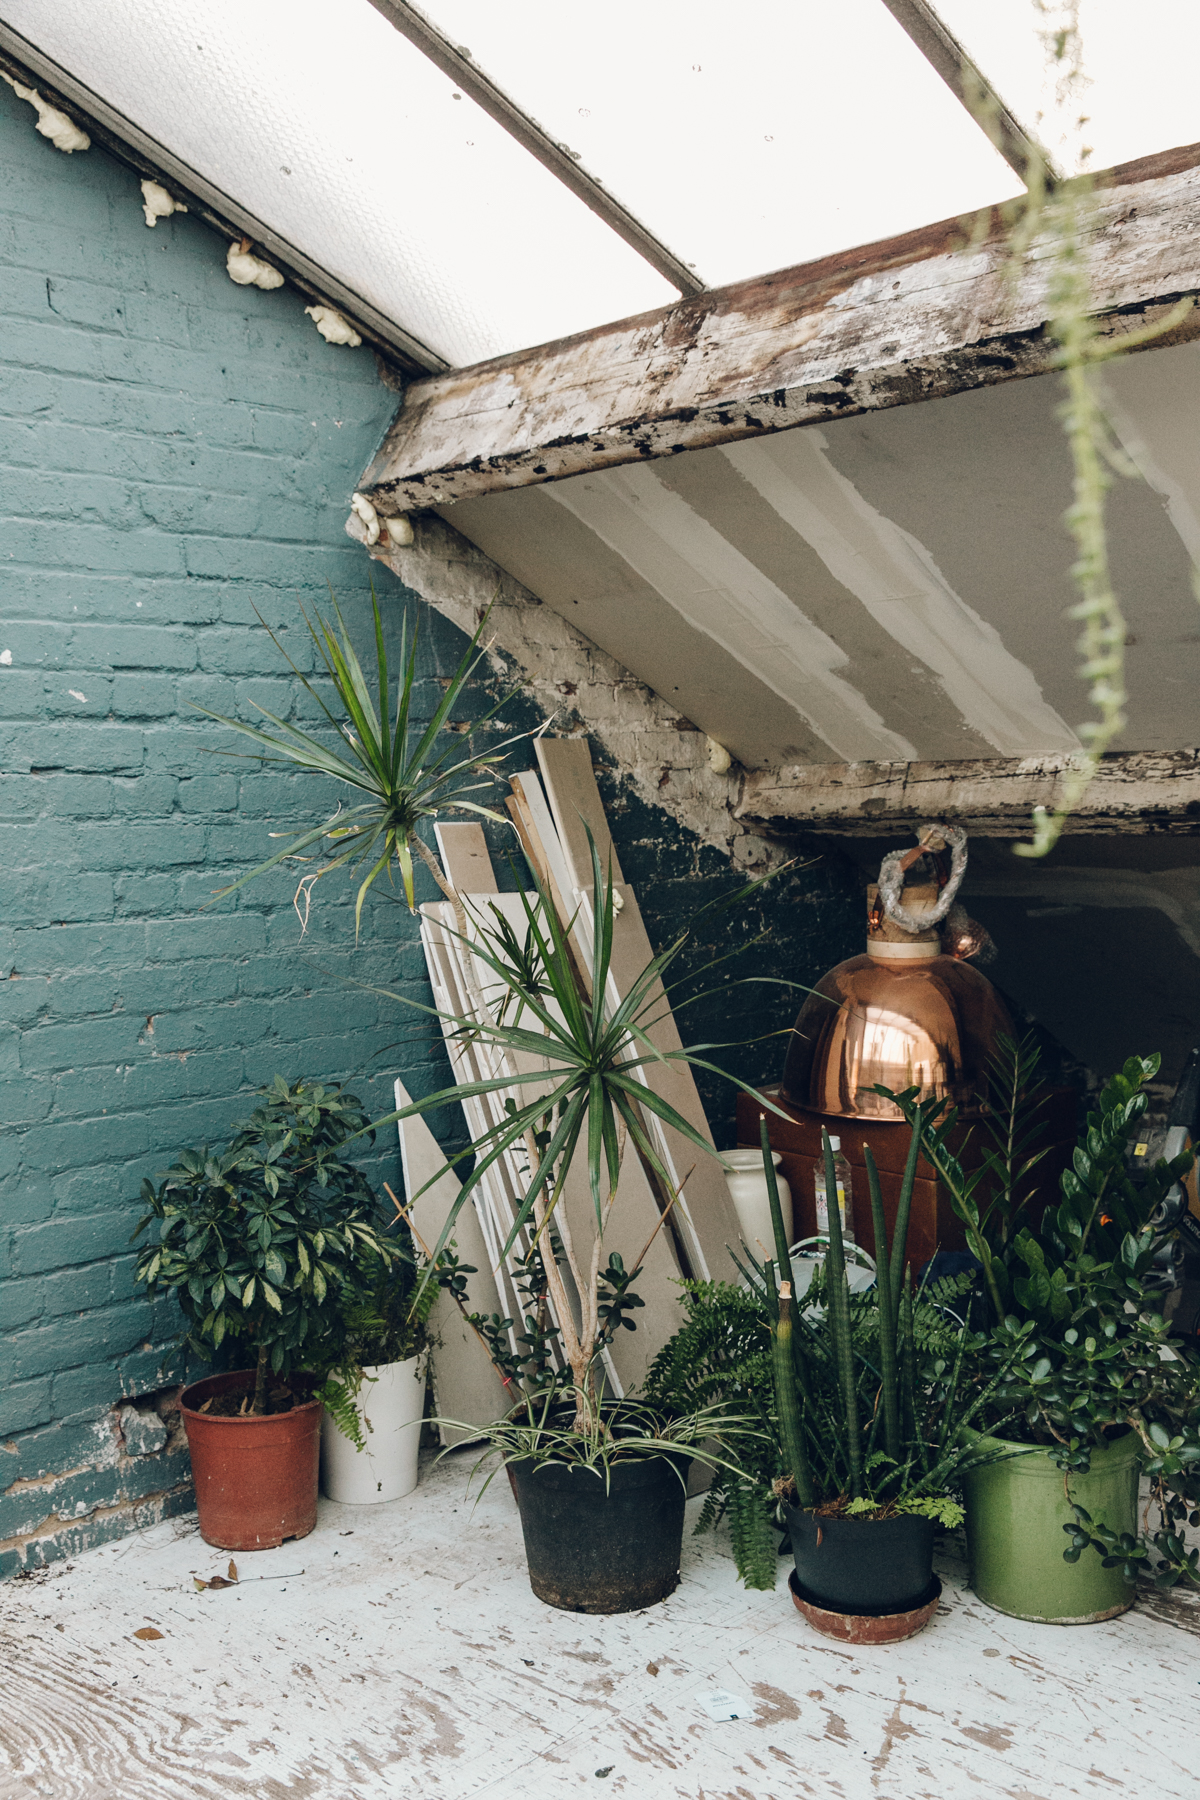 The plant rehab centre (aka light-filled attic space) at Clapton Tram.